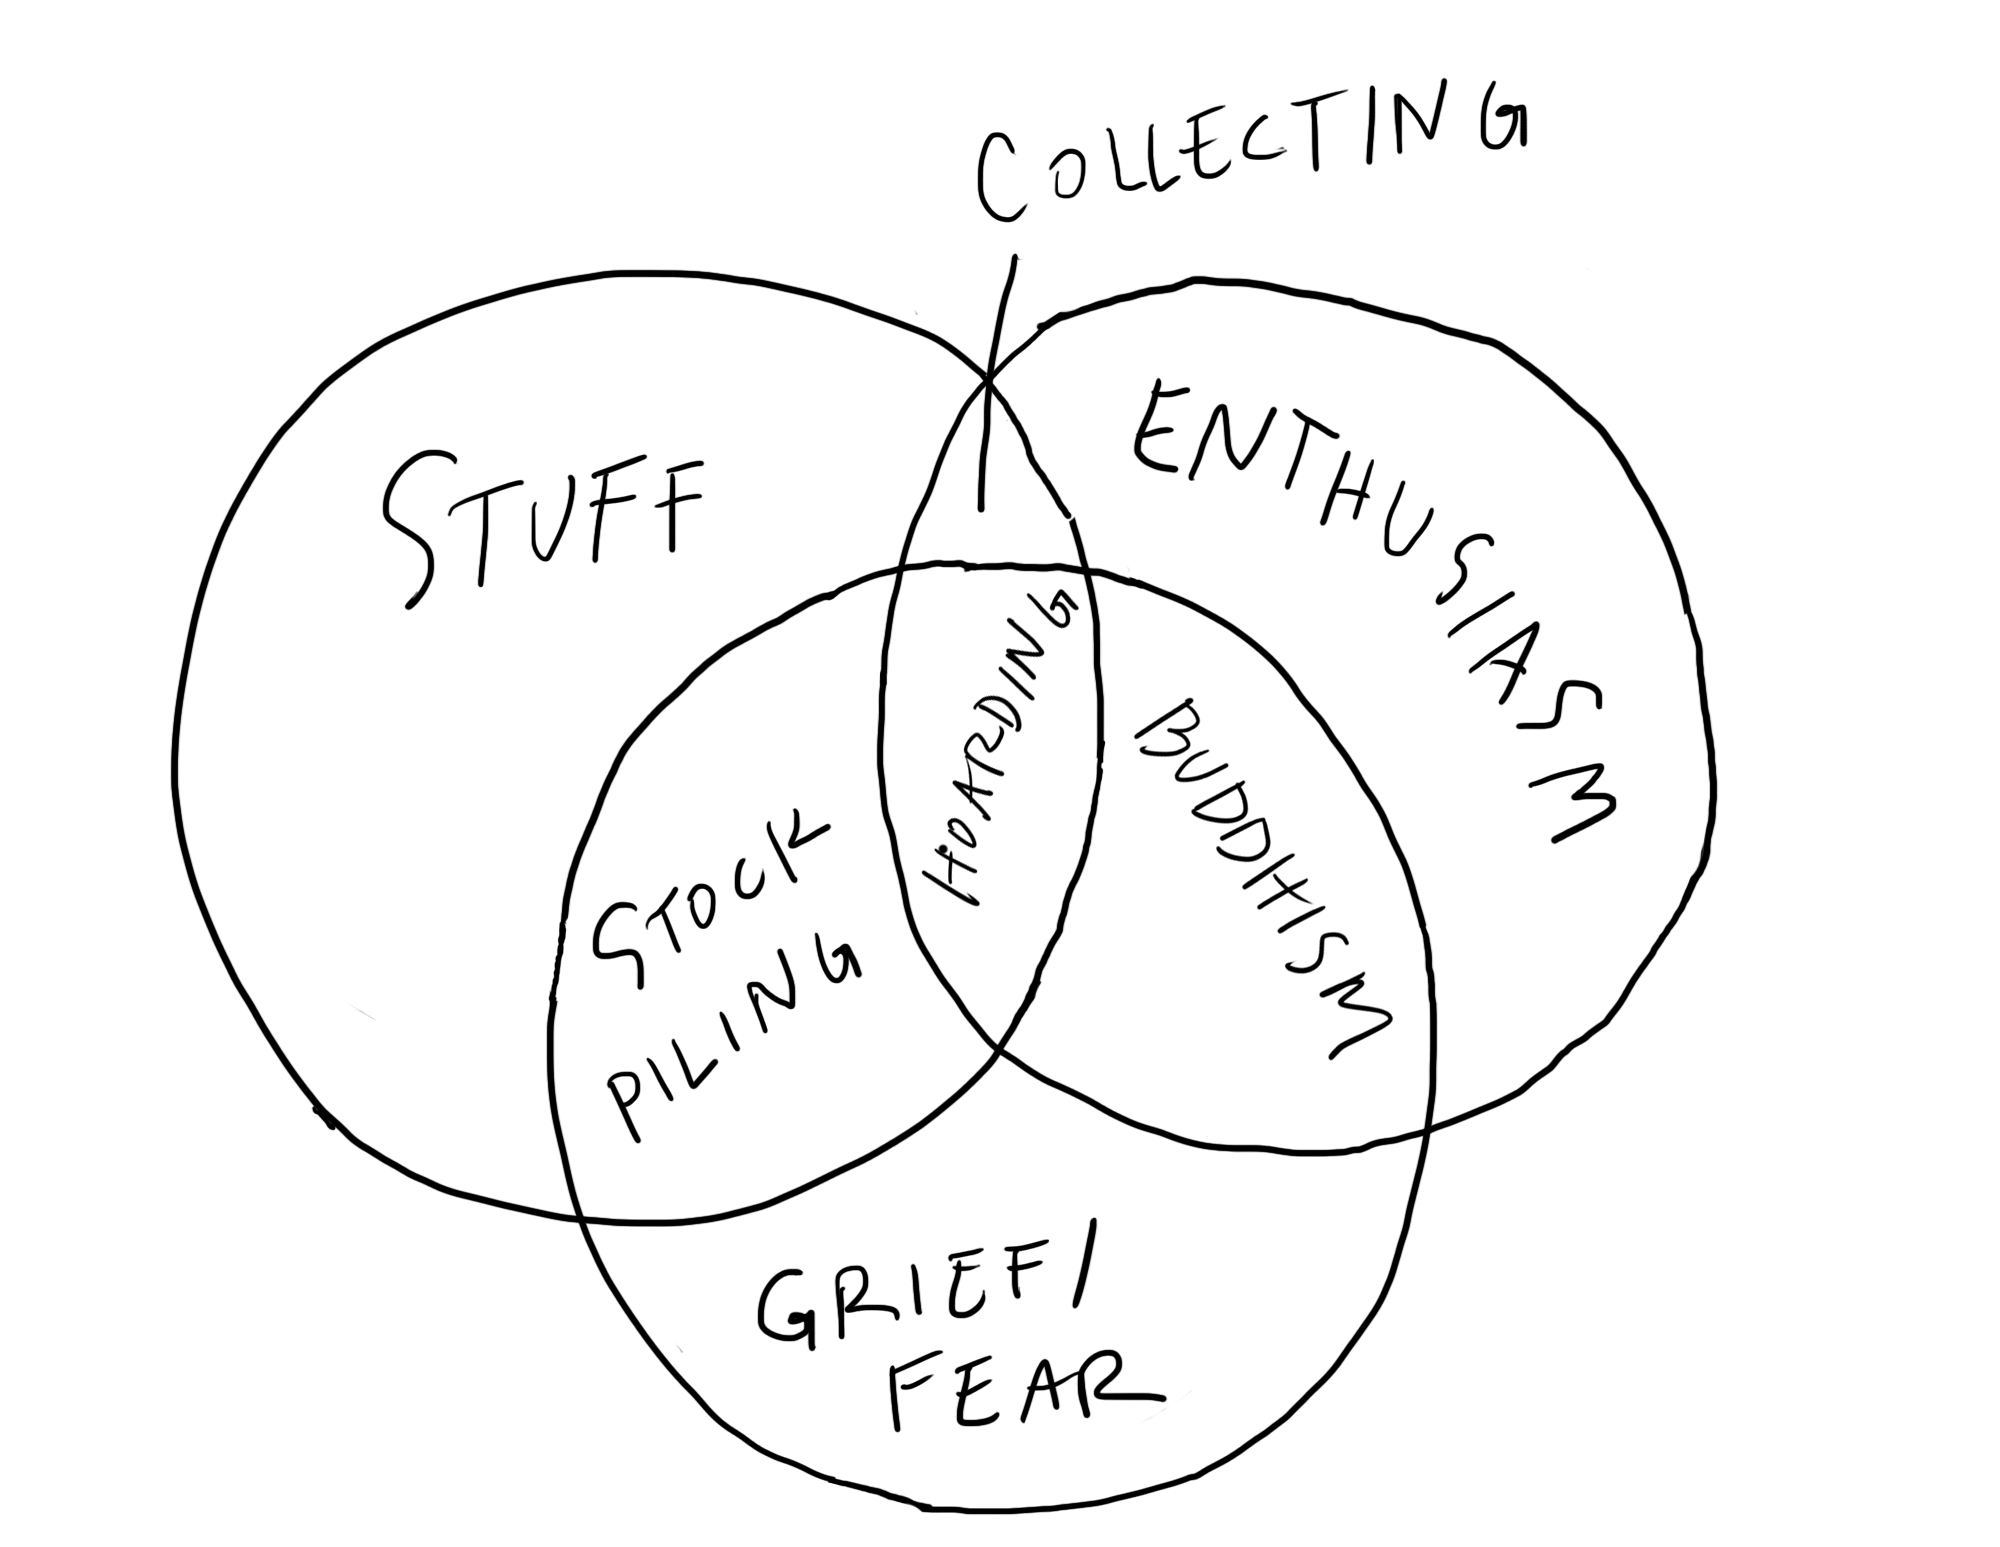 The Differences Go In The Middle Of The Venn Diagram Where